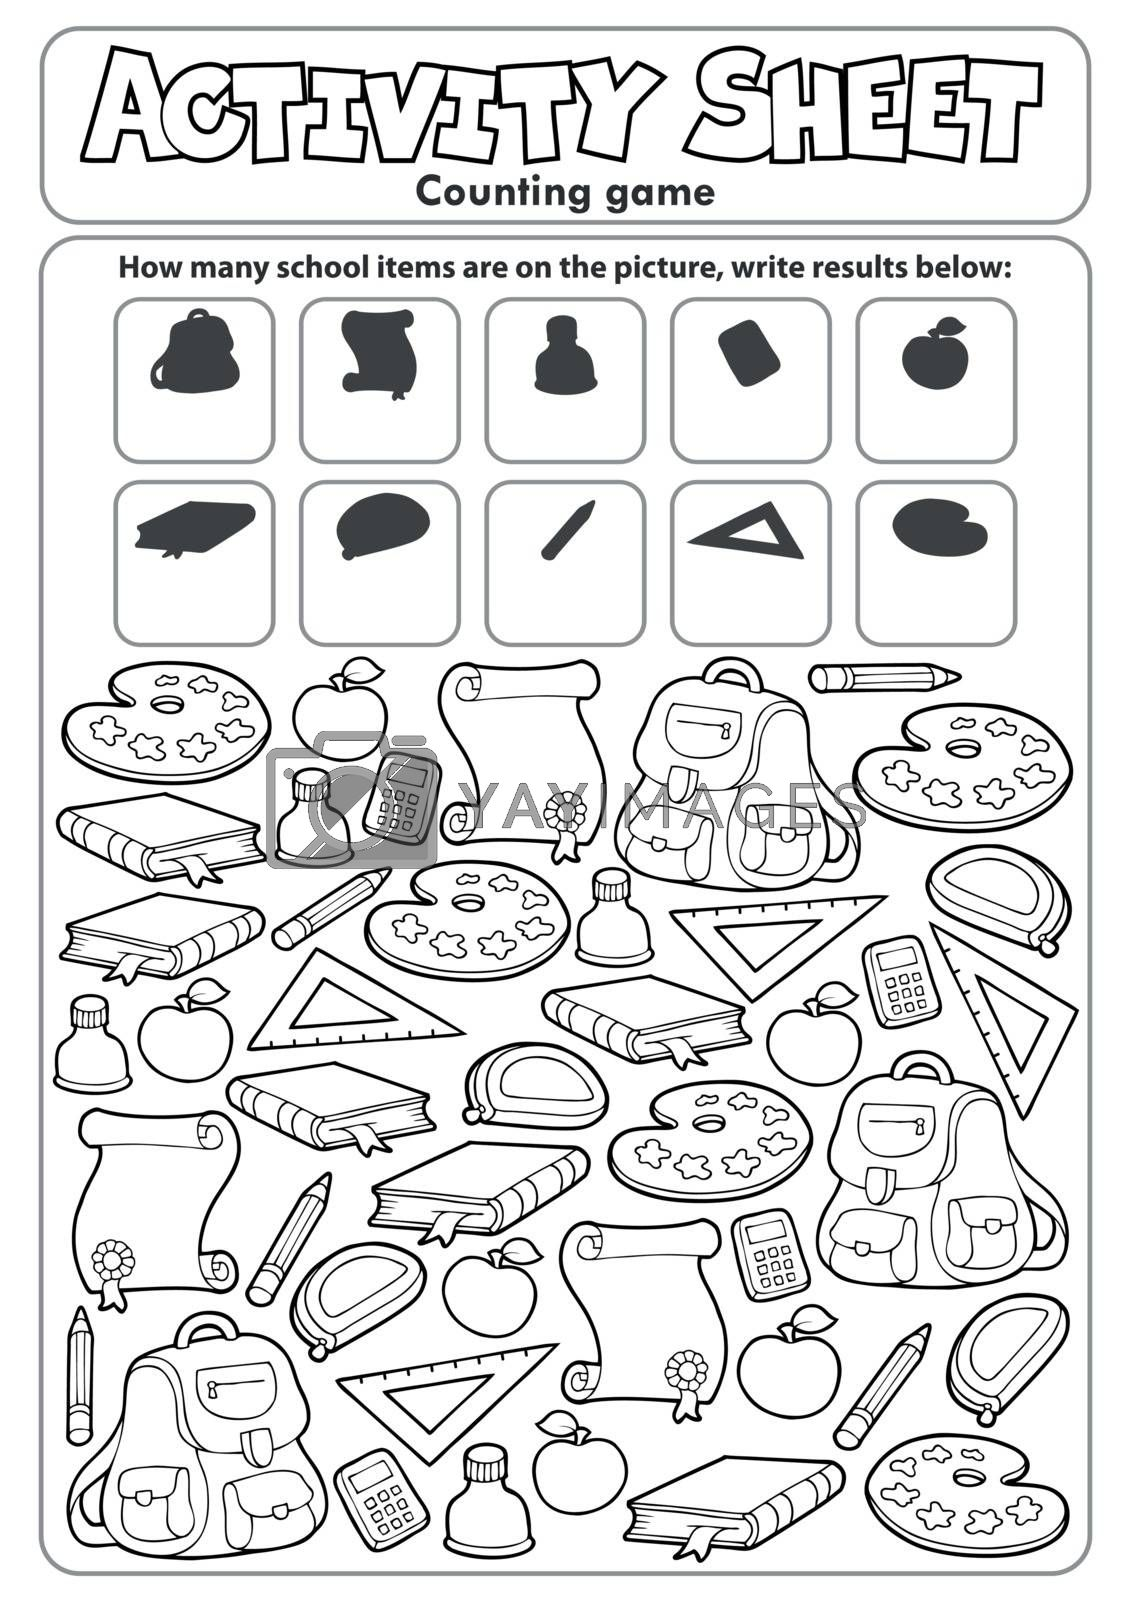 Activity sheet counting game topic 1 - eps10 vector illustration.